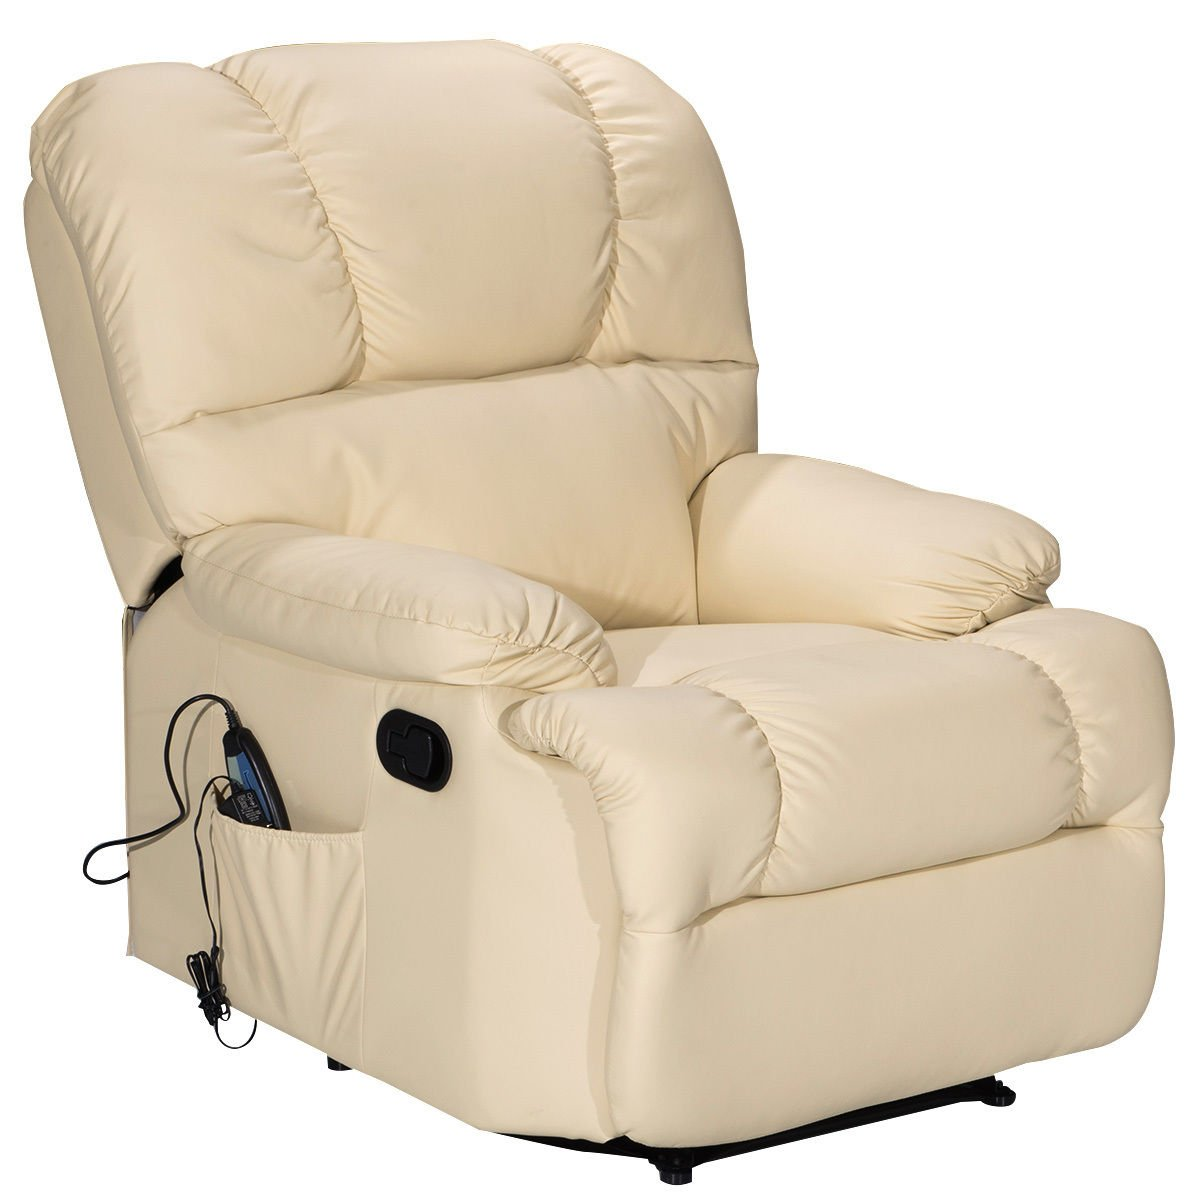 Giantex HW52719BE Sofa Heating Set and 8 Vibrating Modes, Ergonomic Full Body Leather Massage Chair Recliner with Control for Home, Living Room (Beige) by Giantex